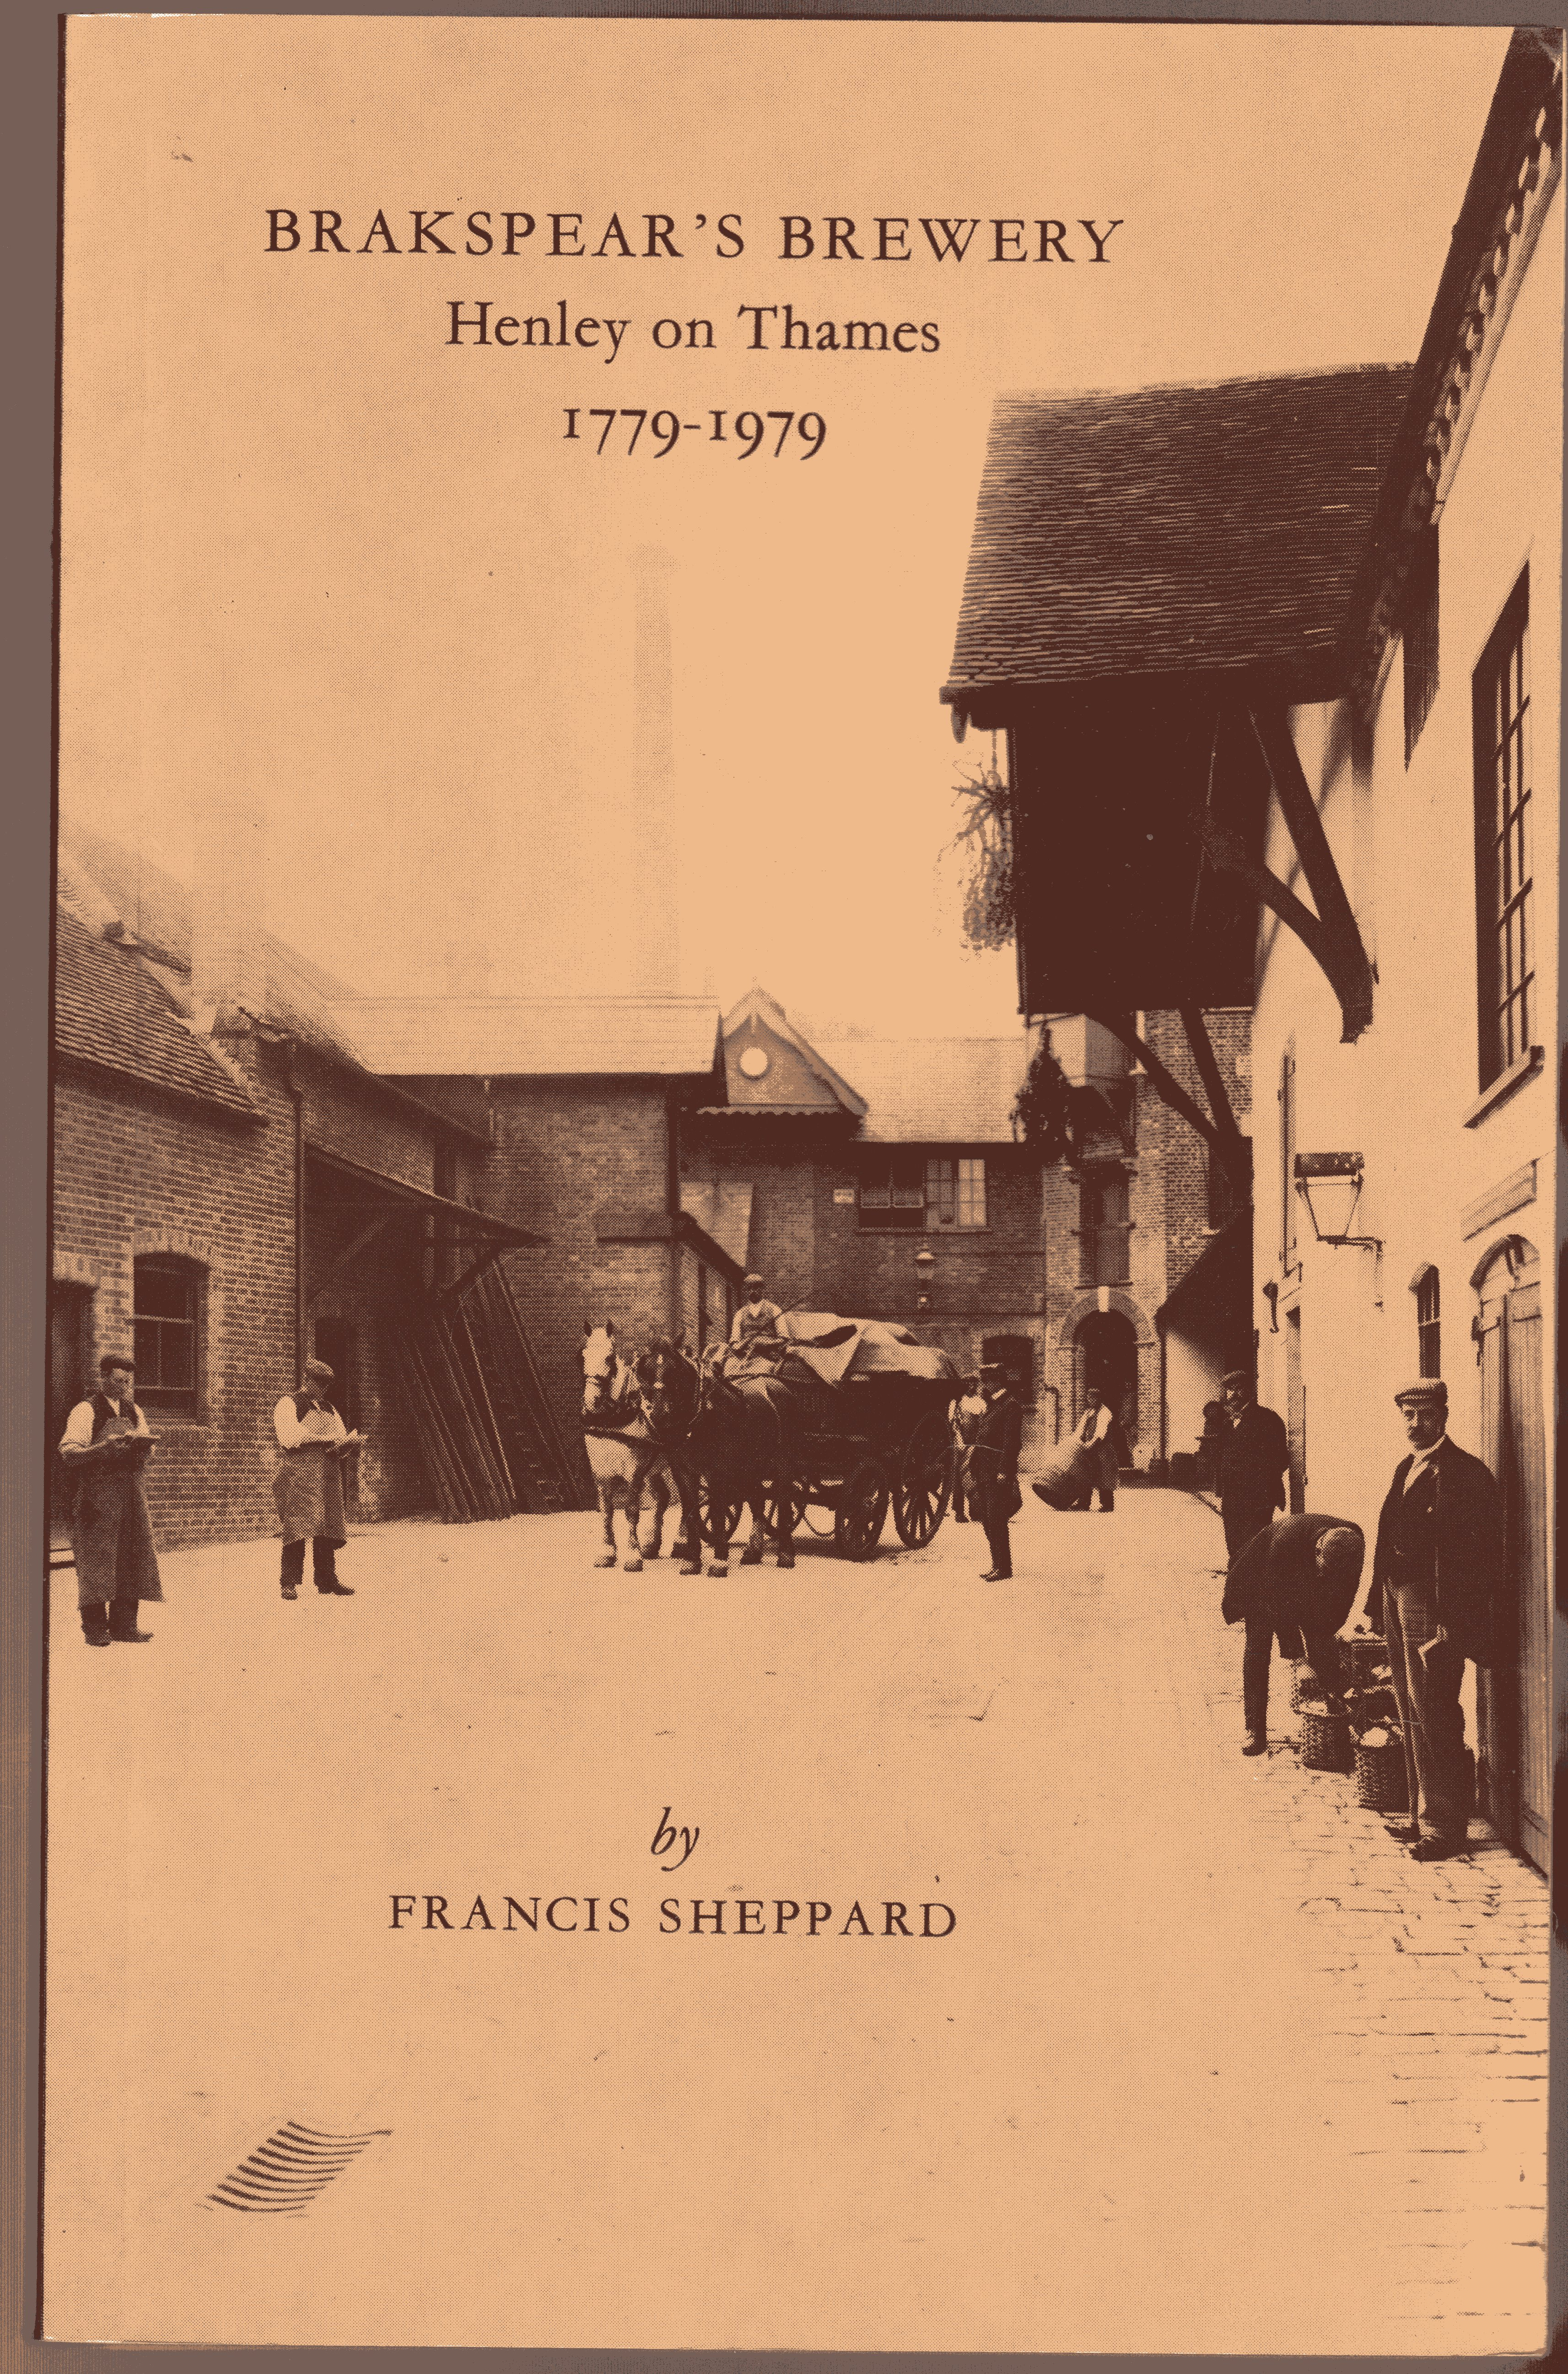 Image for Brakspear's Brewery, Henley on Thames 1779-1979